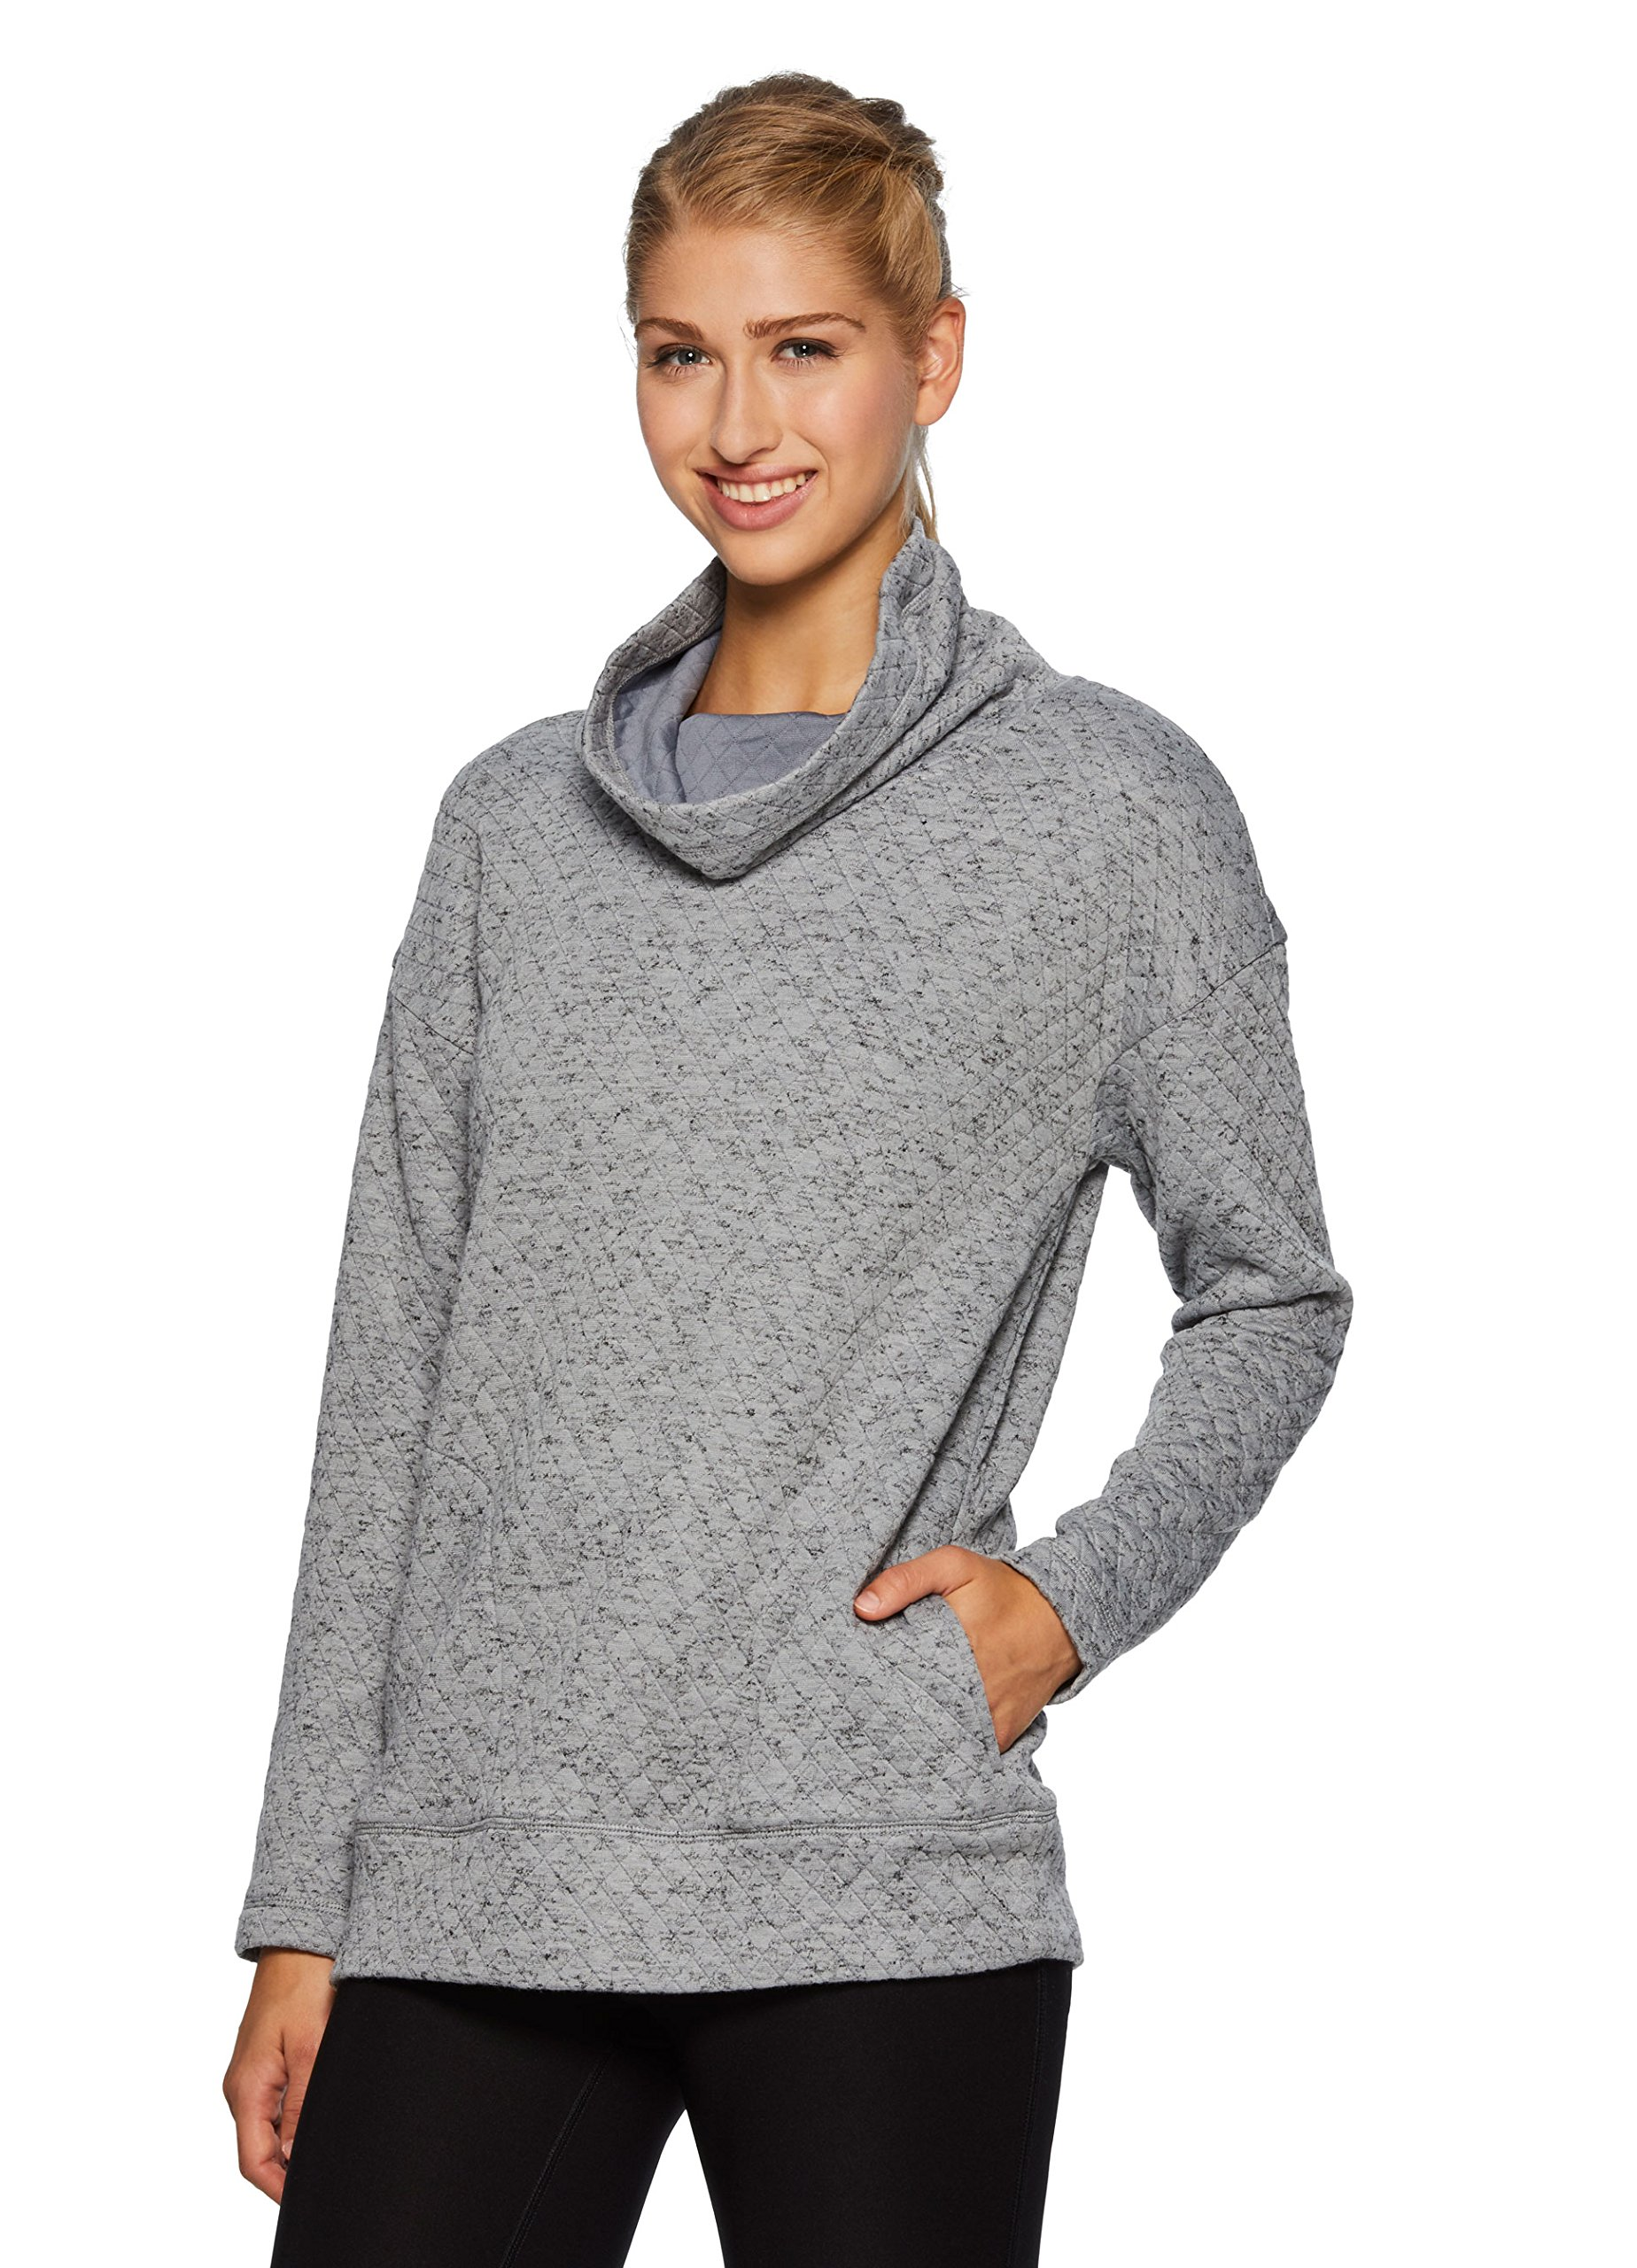 RBX Active Women's Ultra-Soft Quilted Cowl Neck Pullover Gray M